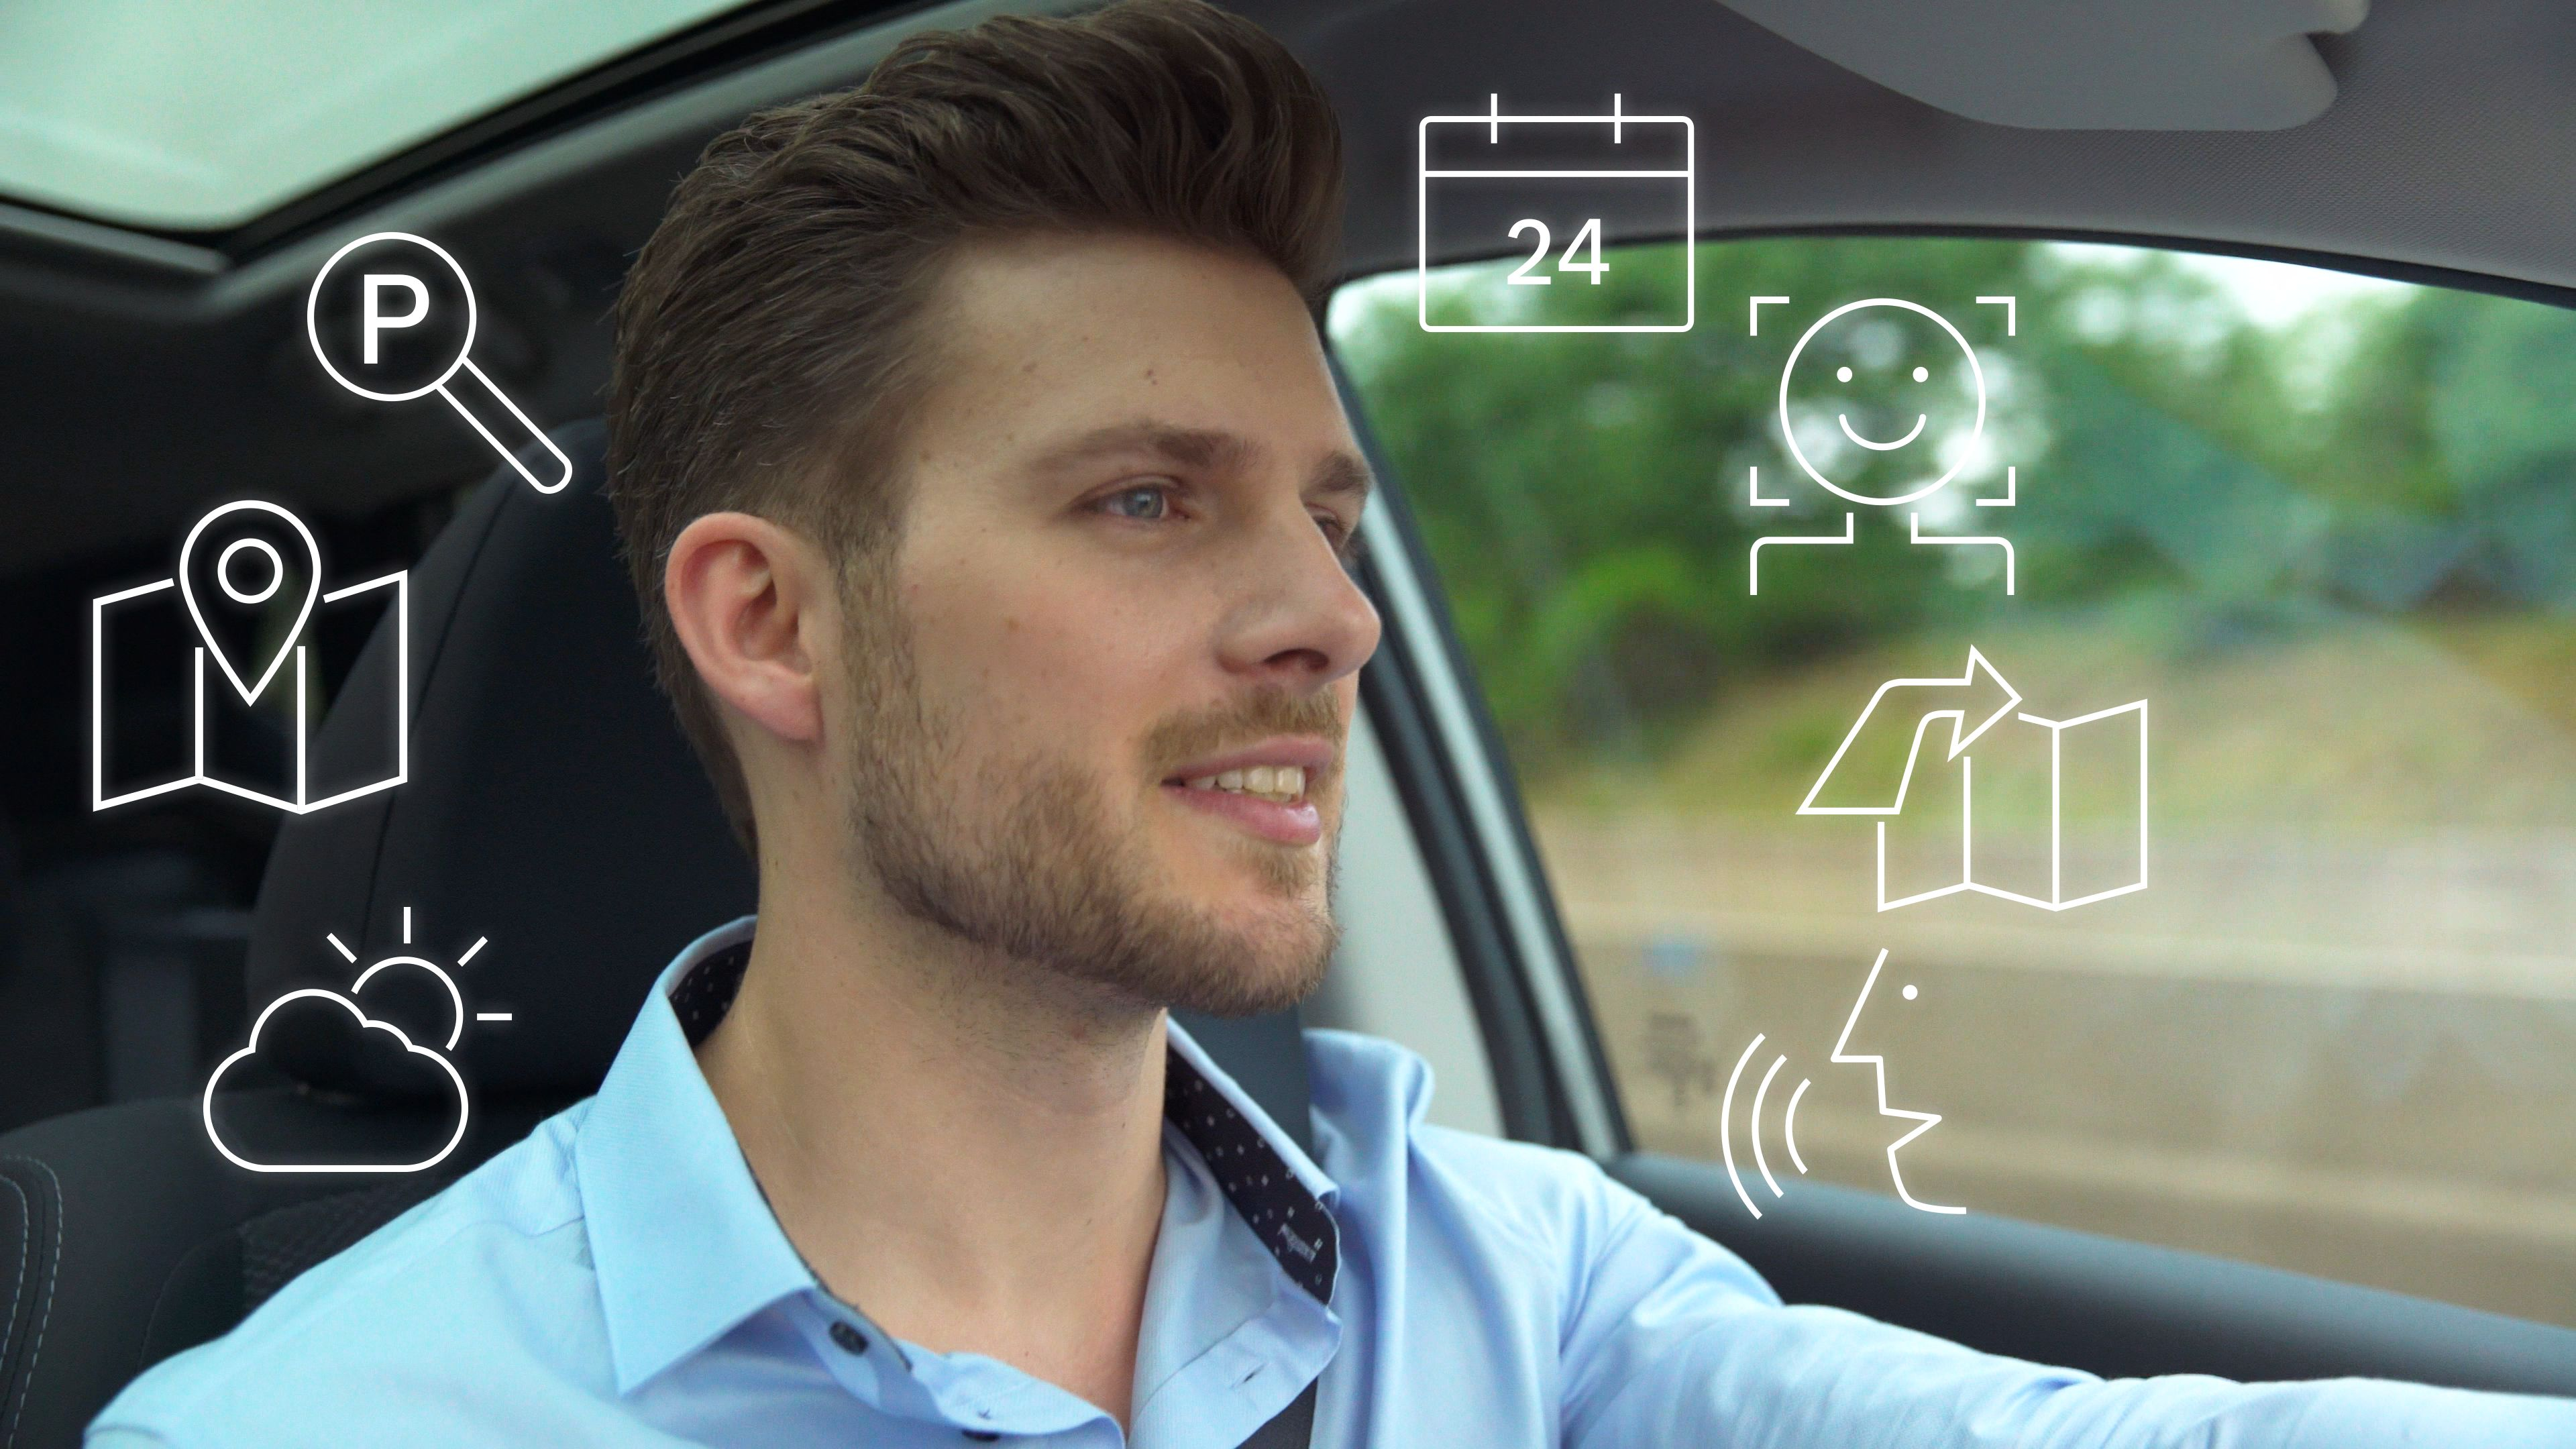 Bosch puts the voice assistant behind the wheel